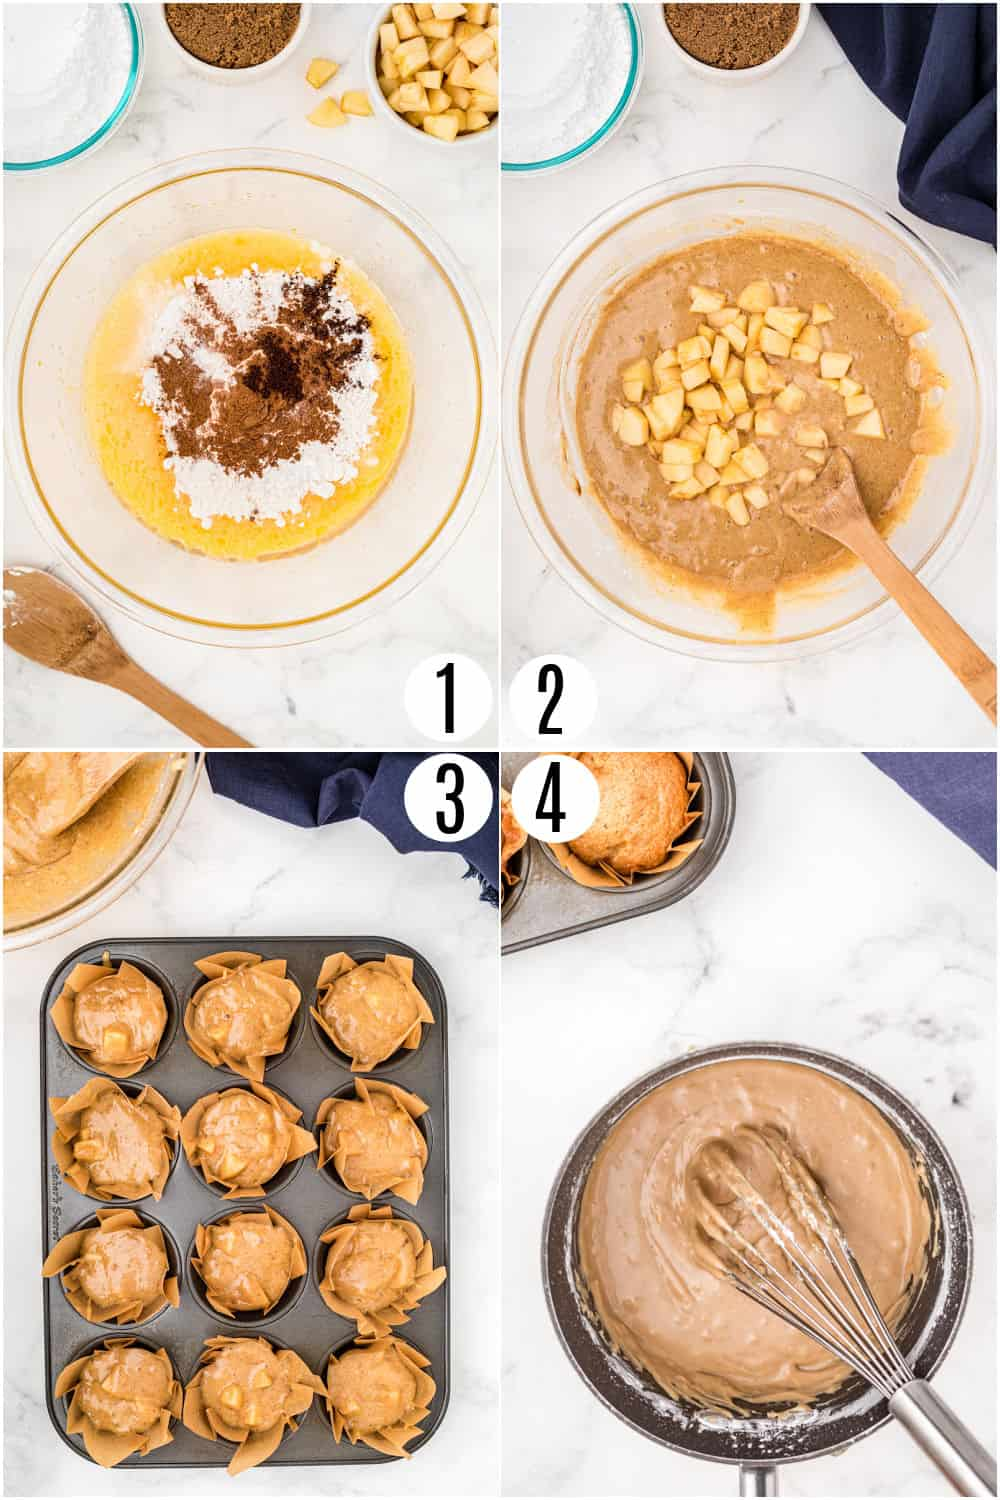 Step by step photos showing how to make apple muffins.